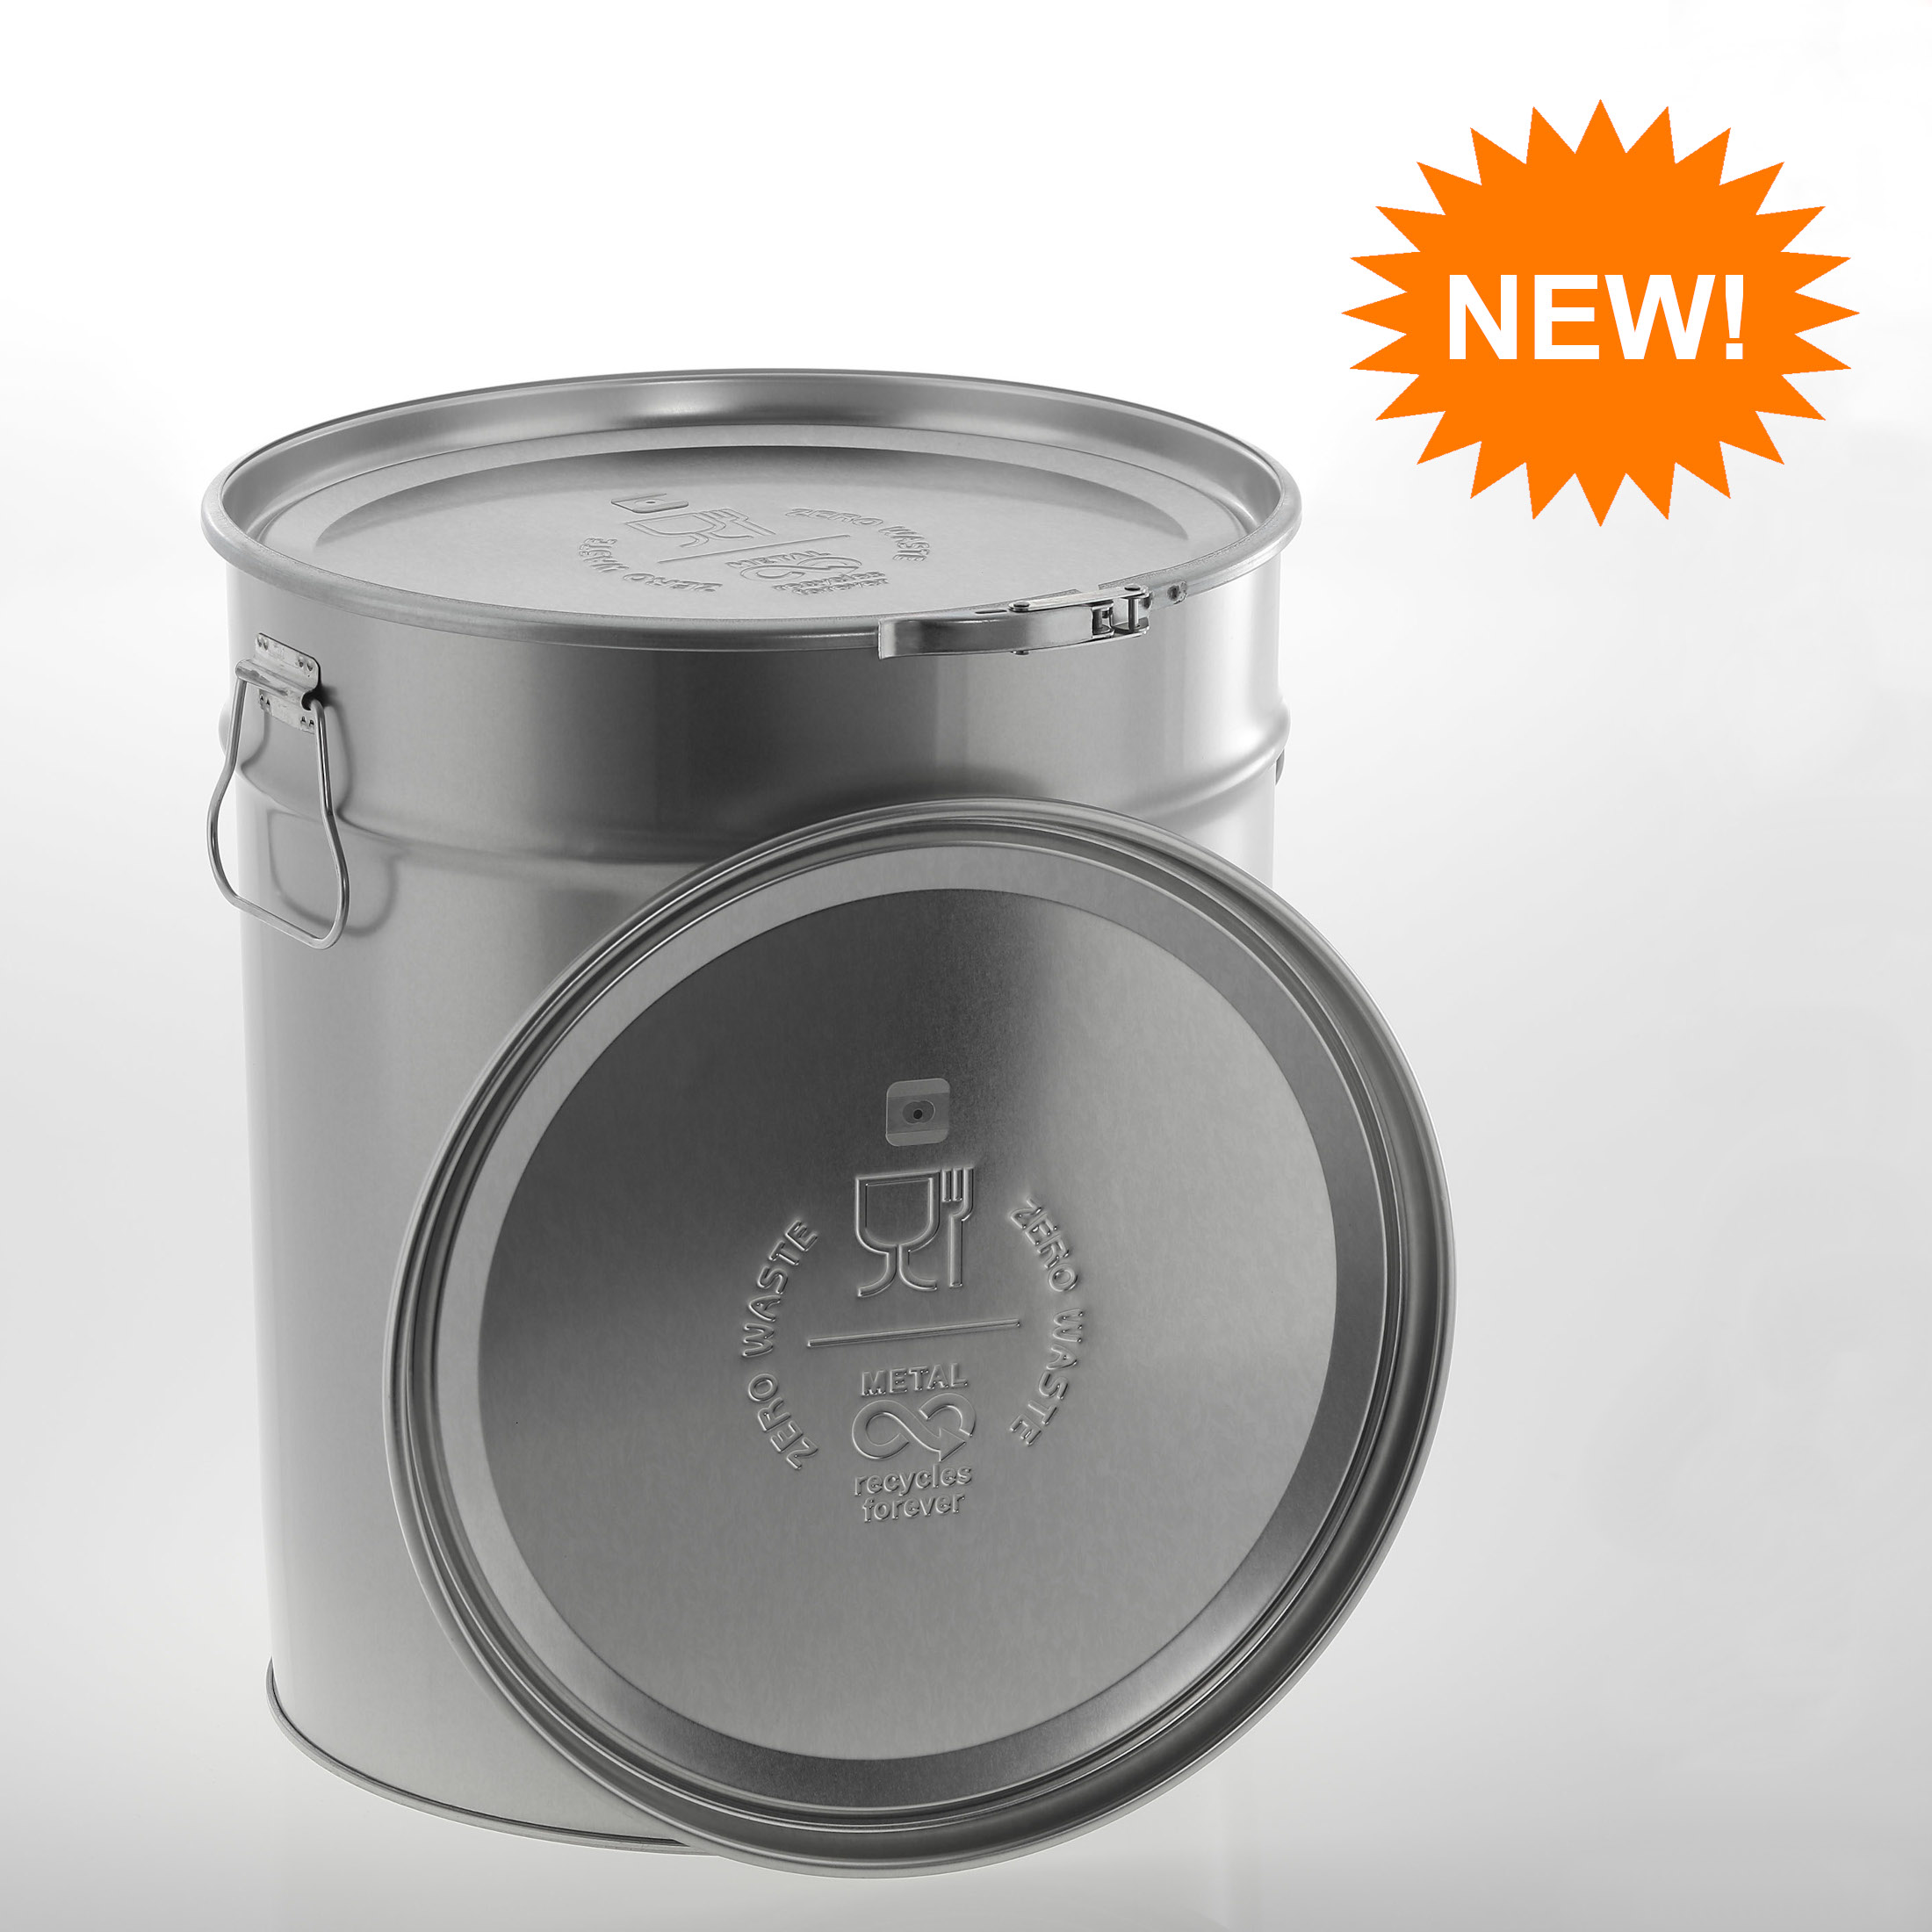 Roasting pail 30 litre vent hole and embossing